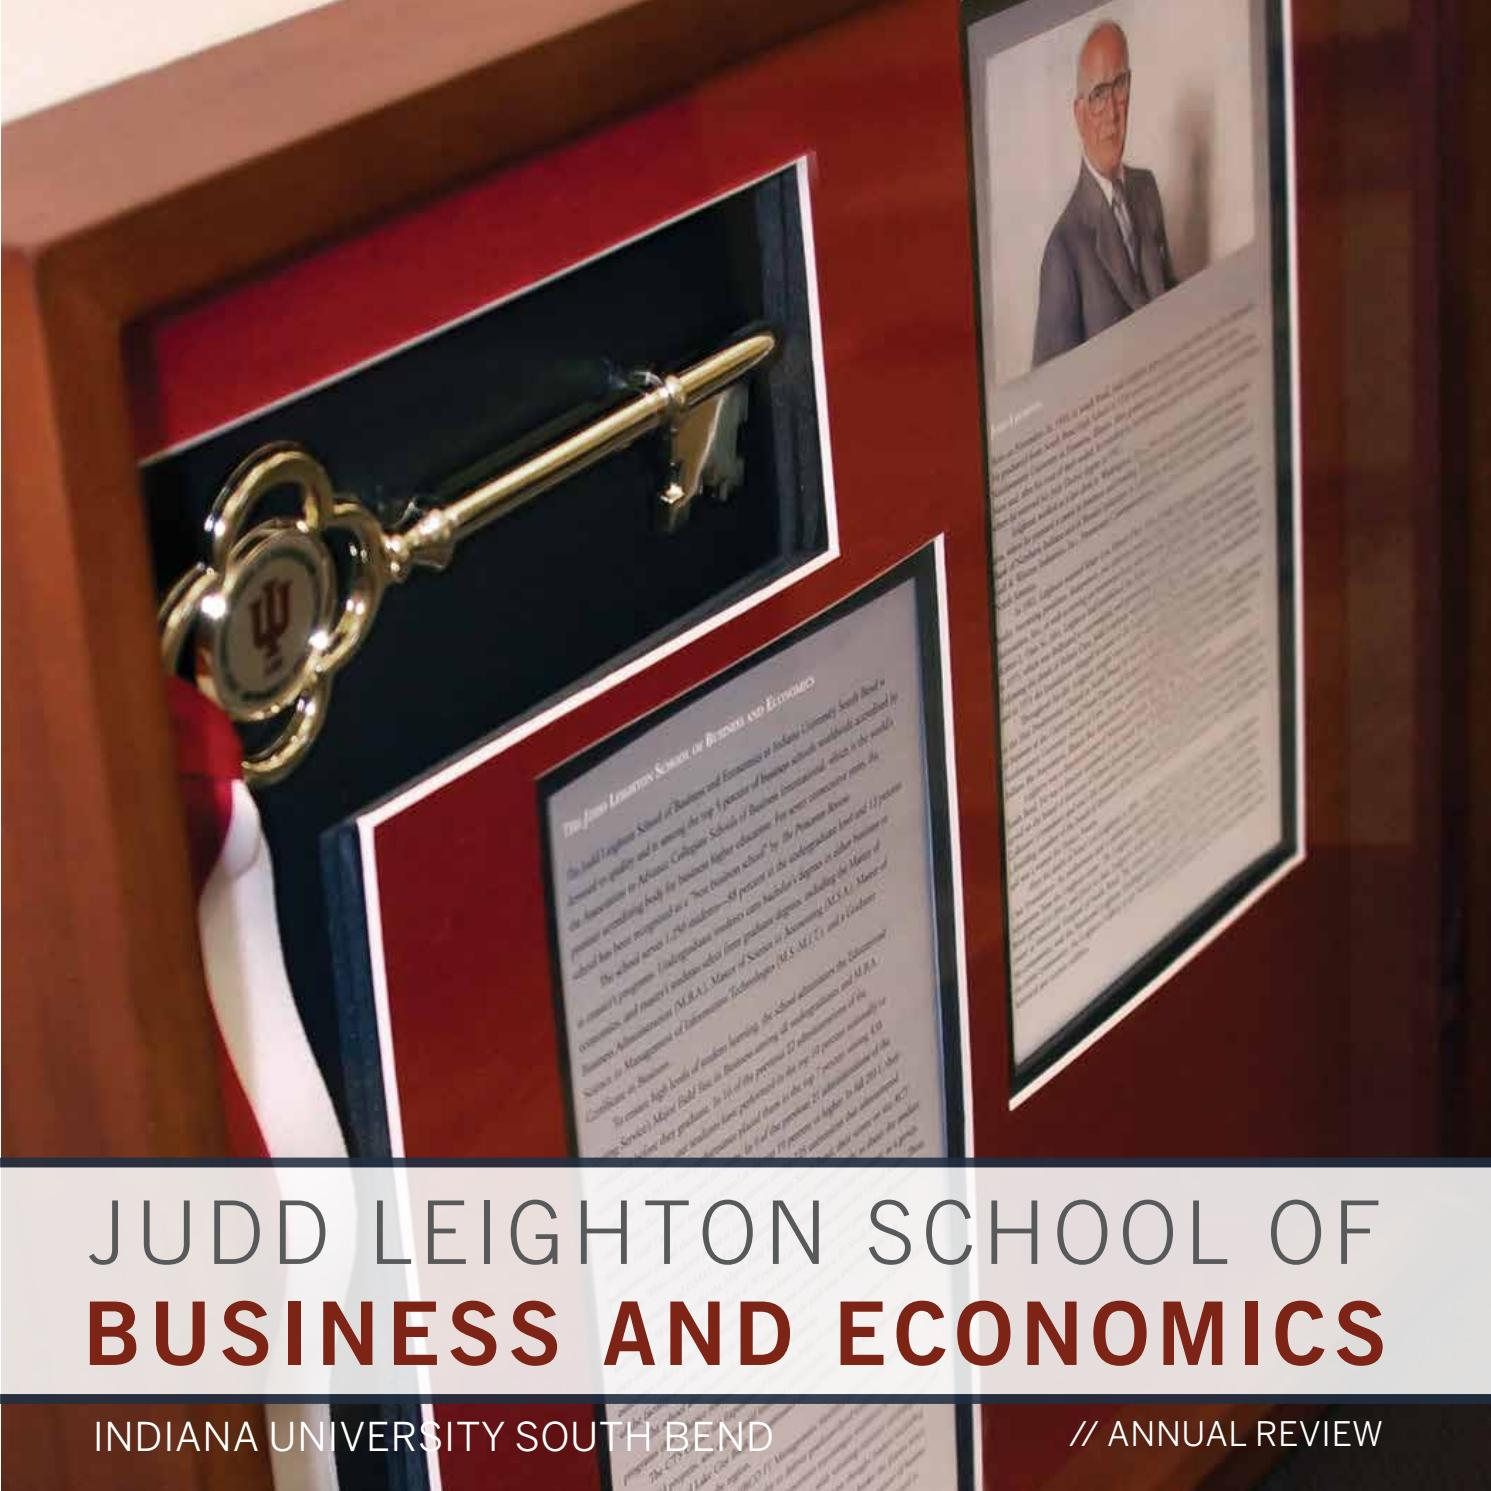 2013 Leighton School Annual Review by Indiana University South Bend - issuu